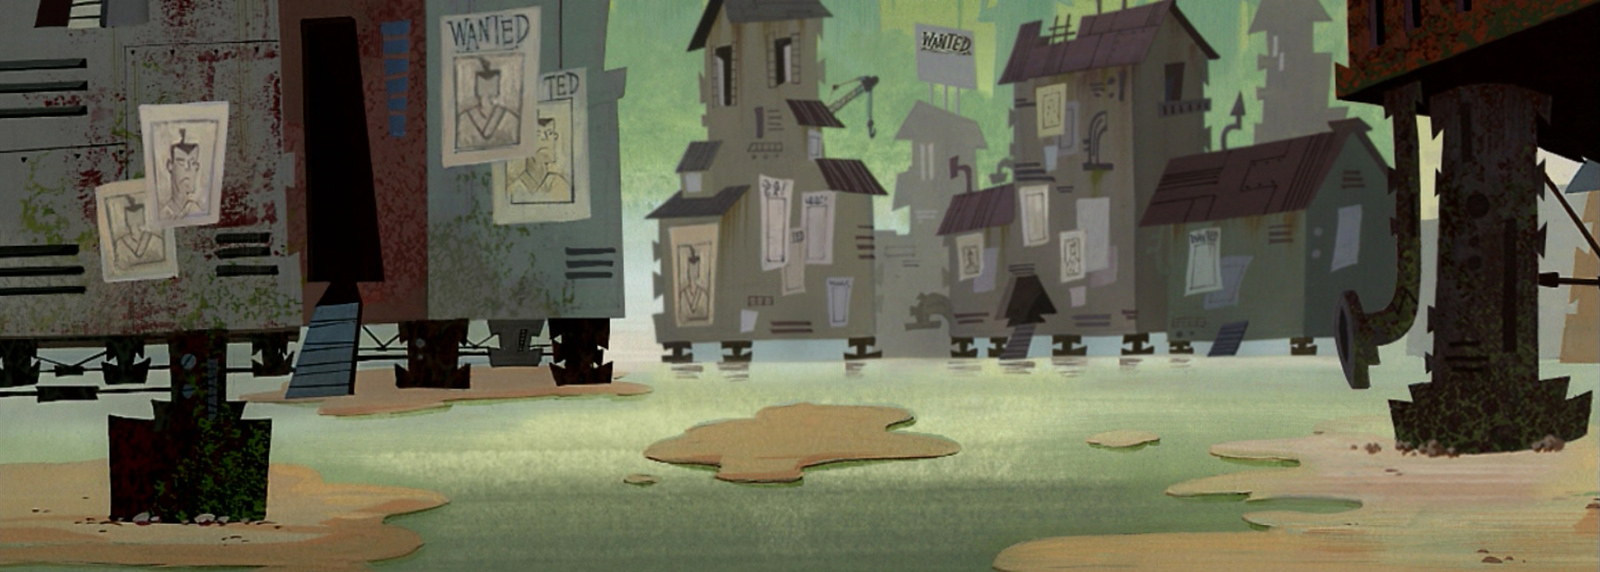 Samurai Jack Images Samurai Jack Hd Wallpaper And